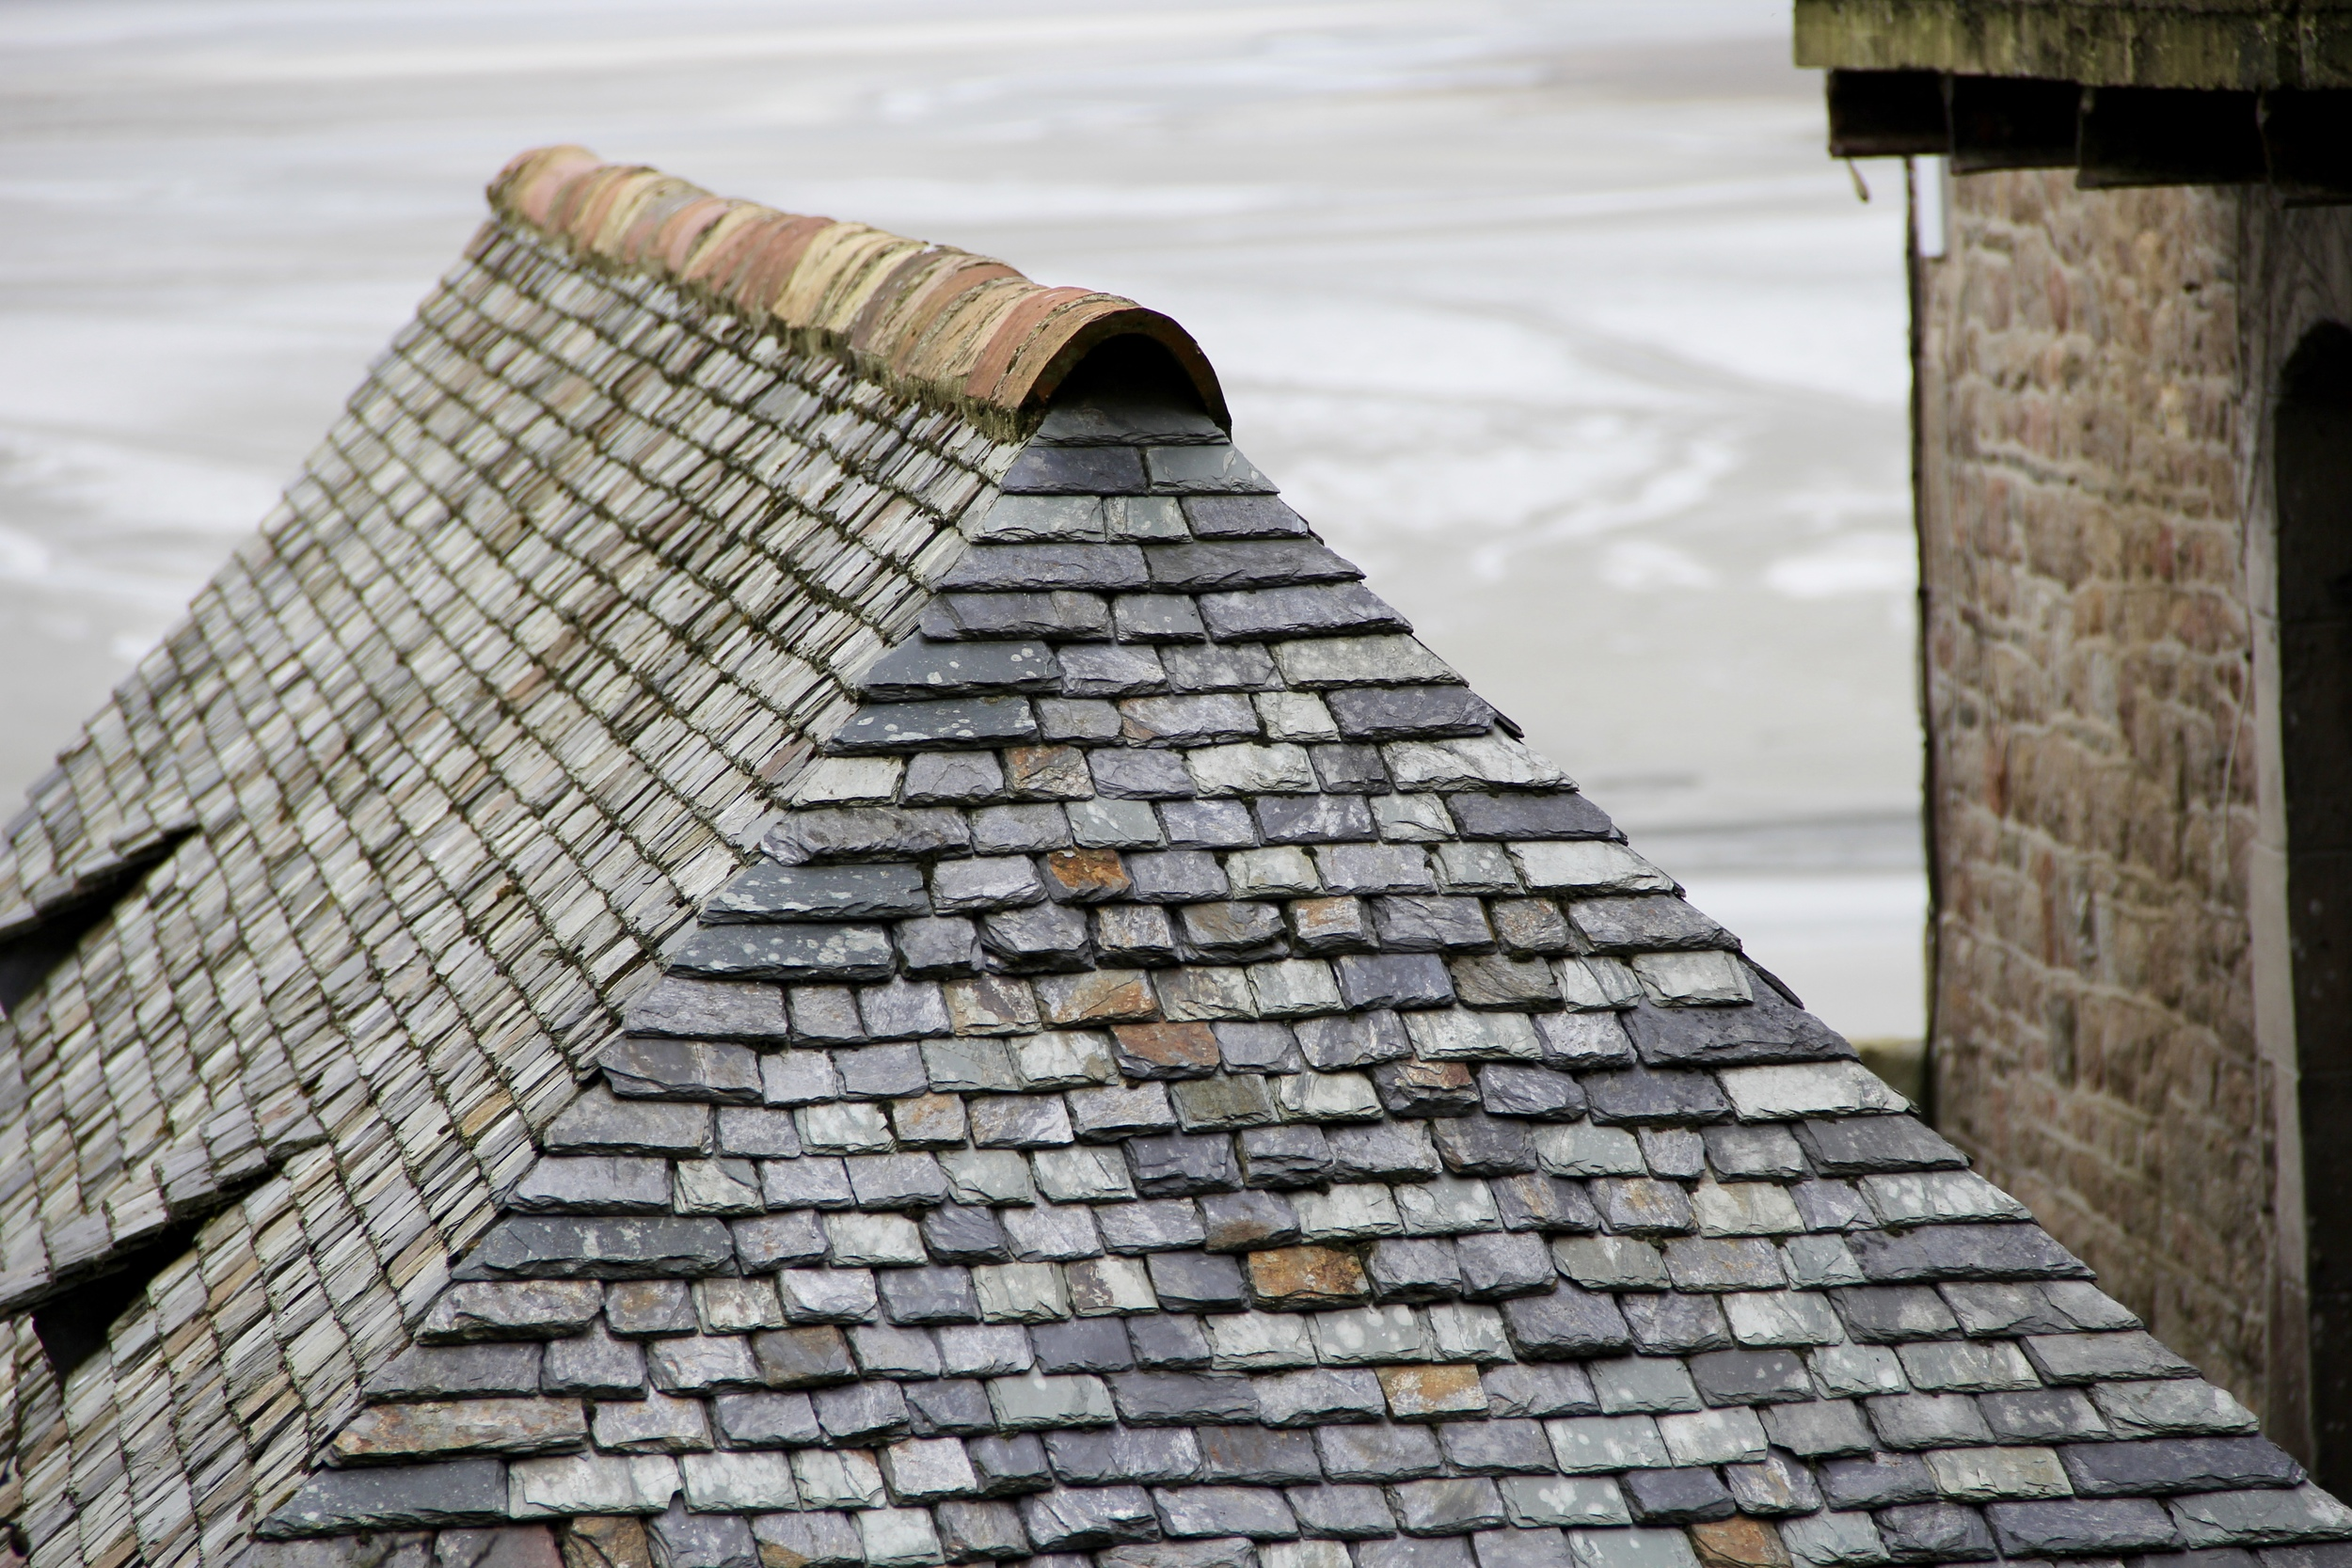 Slate roofs common in the region